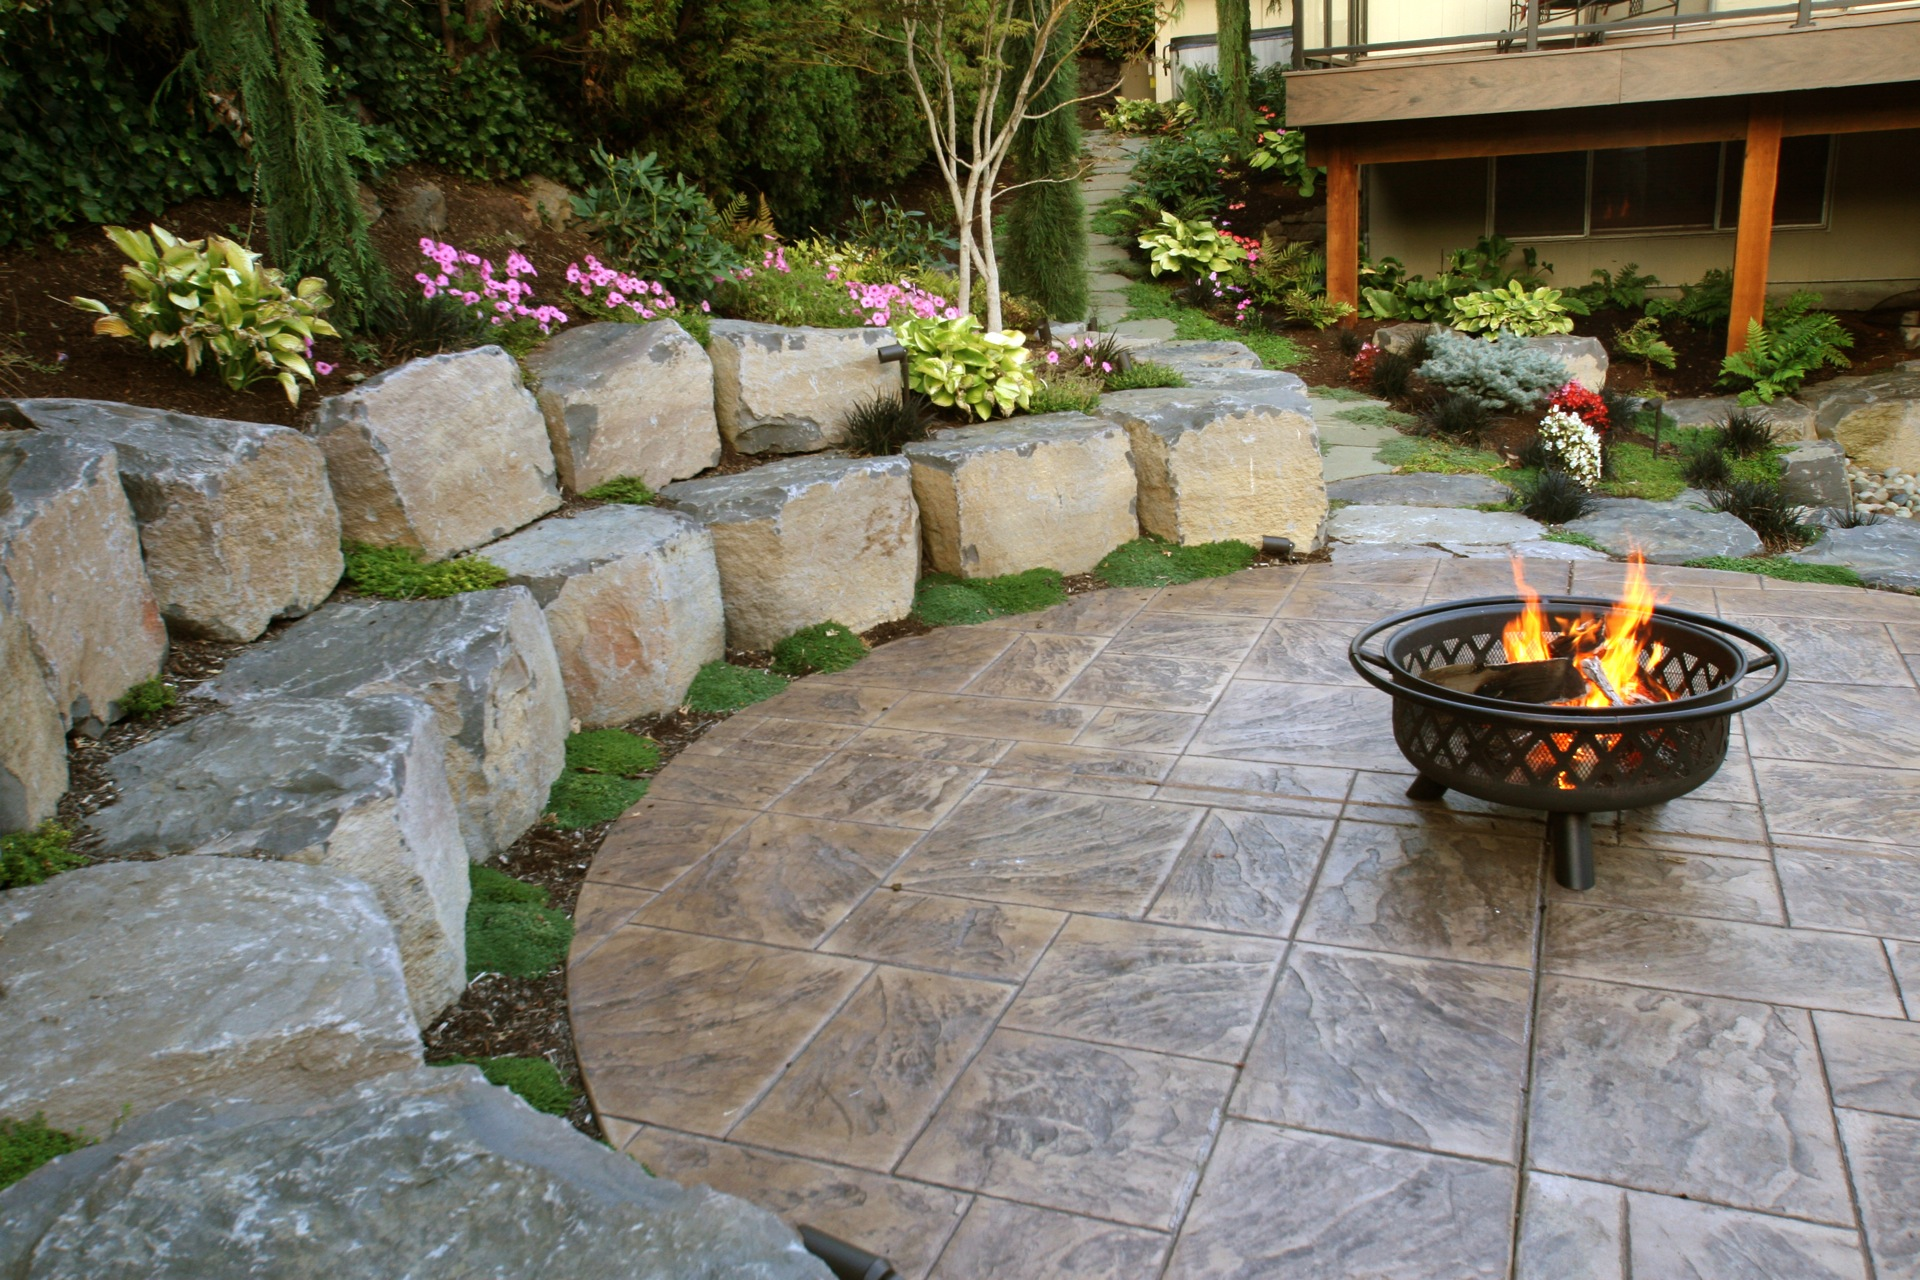 Hardscapes & Retaining Wall Contractors | GRO Outdoor Living on Backyard Hardscape Design id=89658